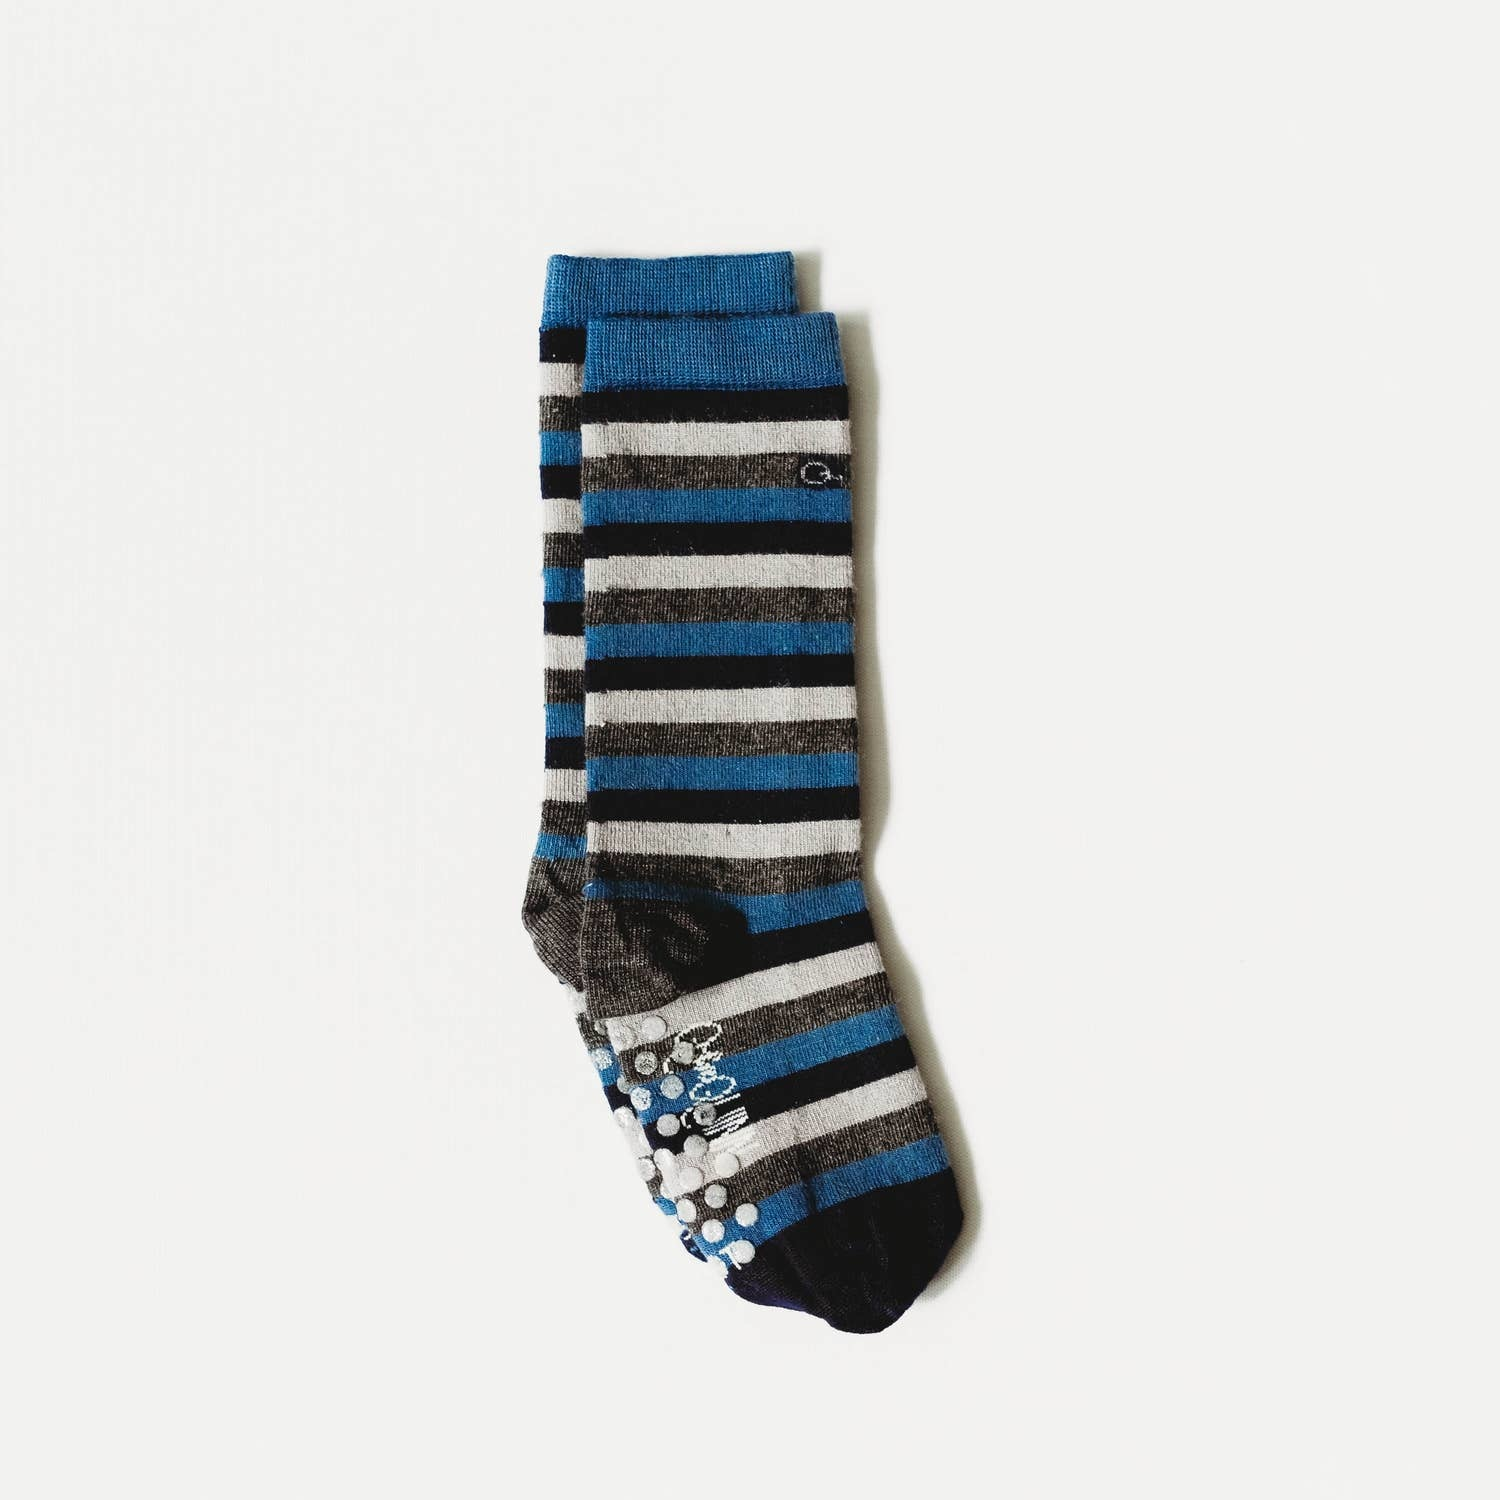 Q for Quinn Merino Wool Socks- Stripes